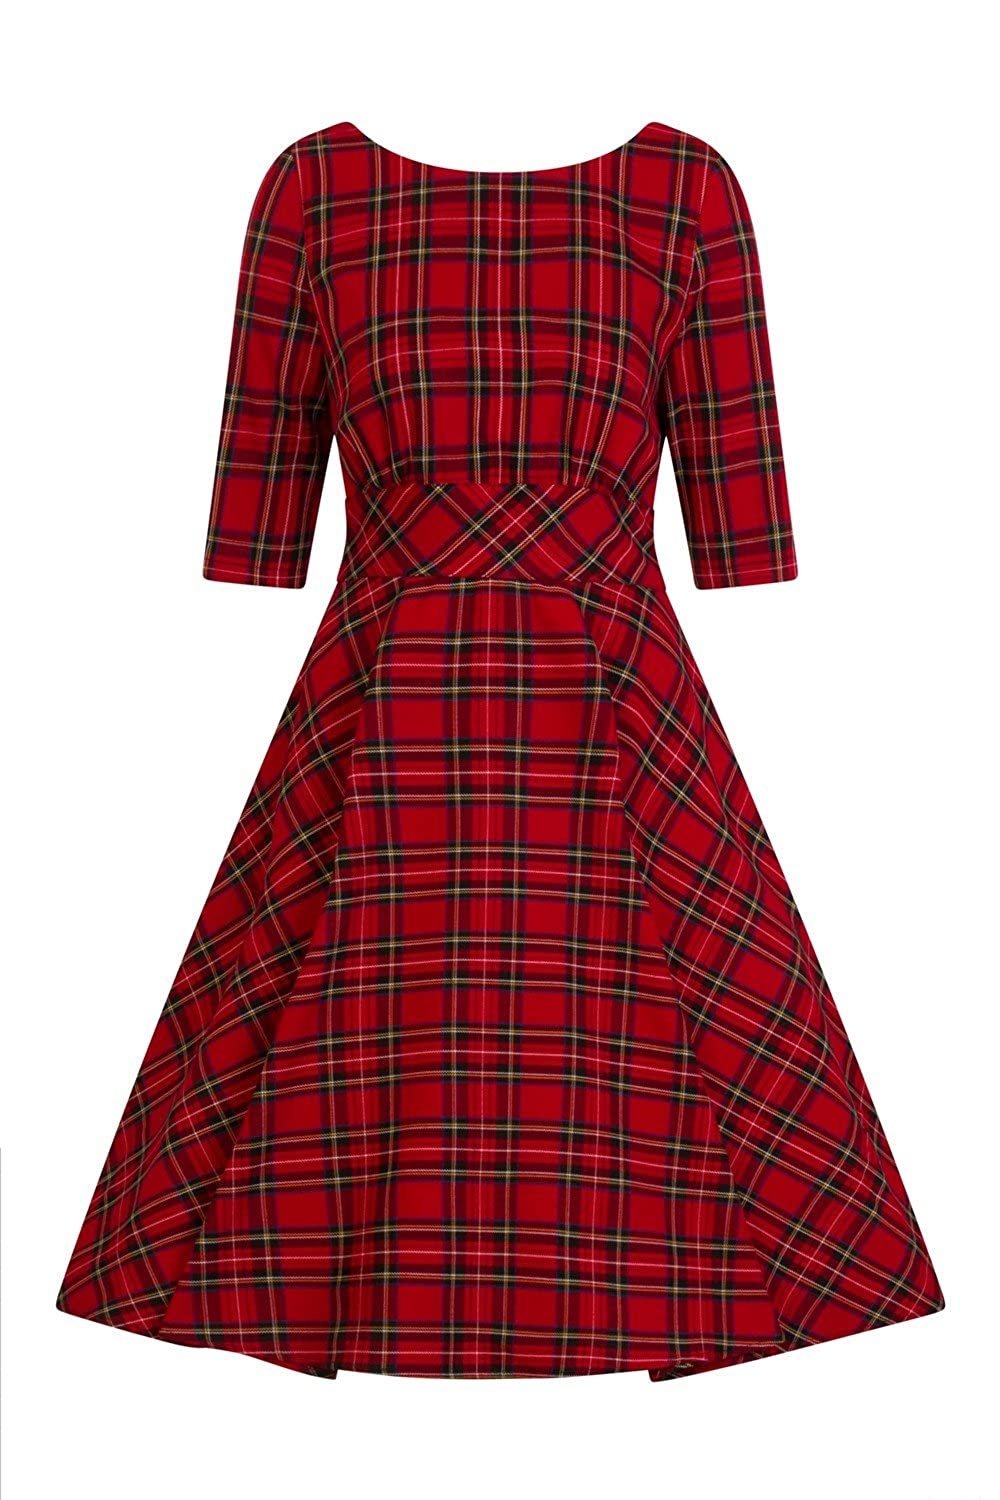 1940s Fashion Advice for Short Women Hell Bunny Irvine Tartan 1950s Vintage Retro Dress XS-4XL $72.99 AT vintagedancer.com